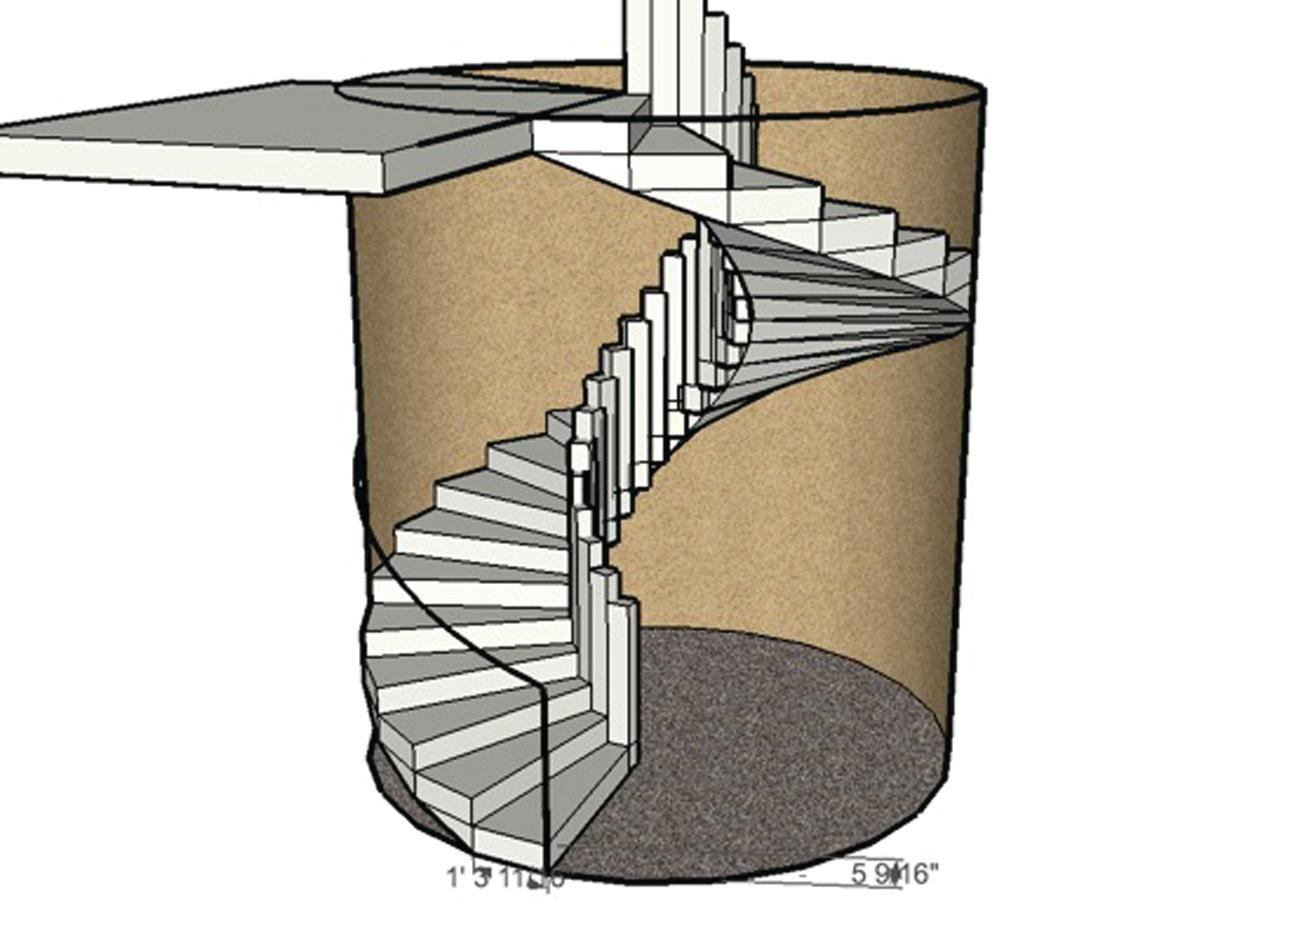 Forming A Circular Concrete Staircase| Concrete Construction Magazine |  Formwork, Concrete Construction, Design, Concrete, Staircases